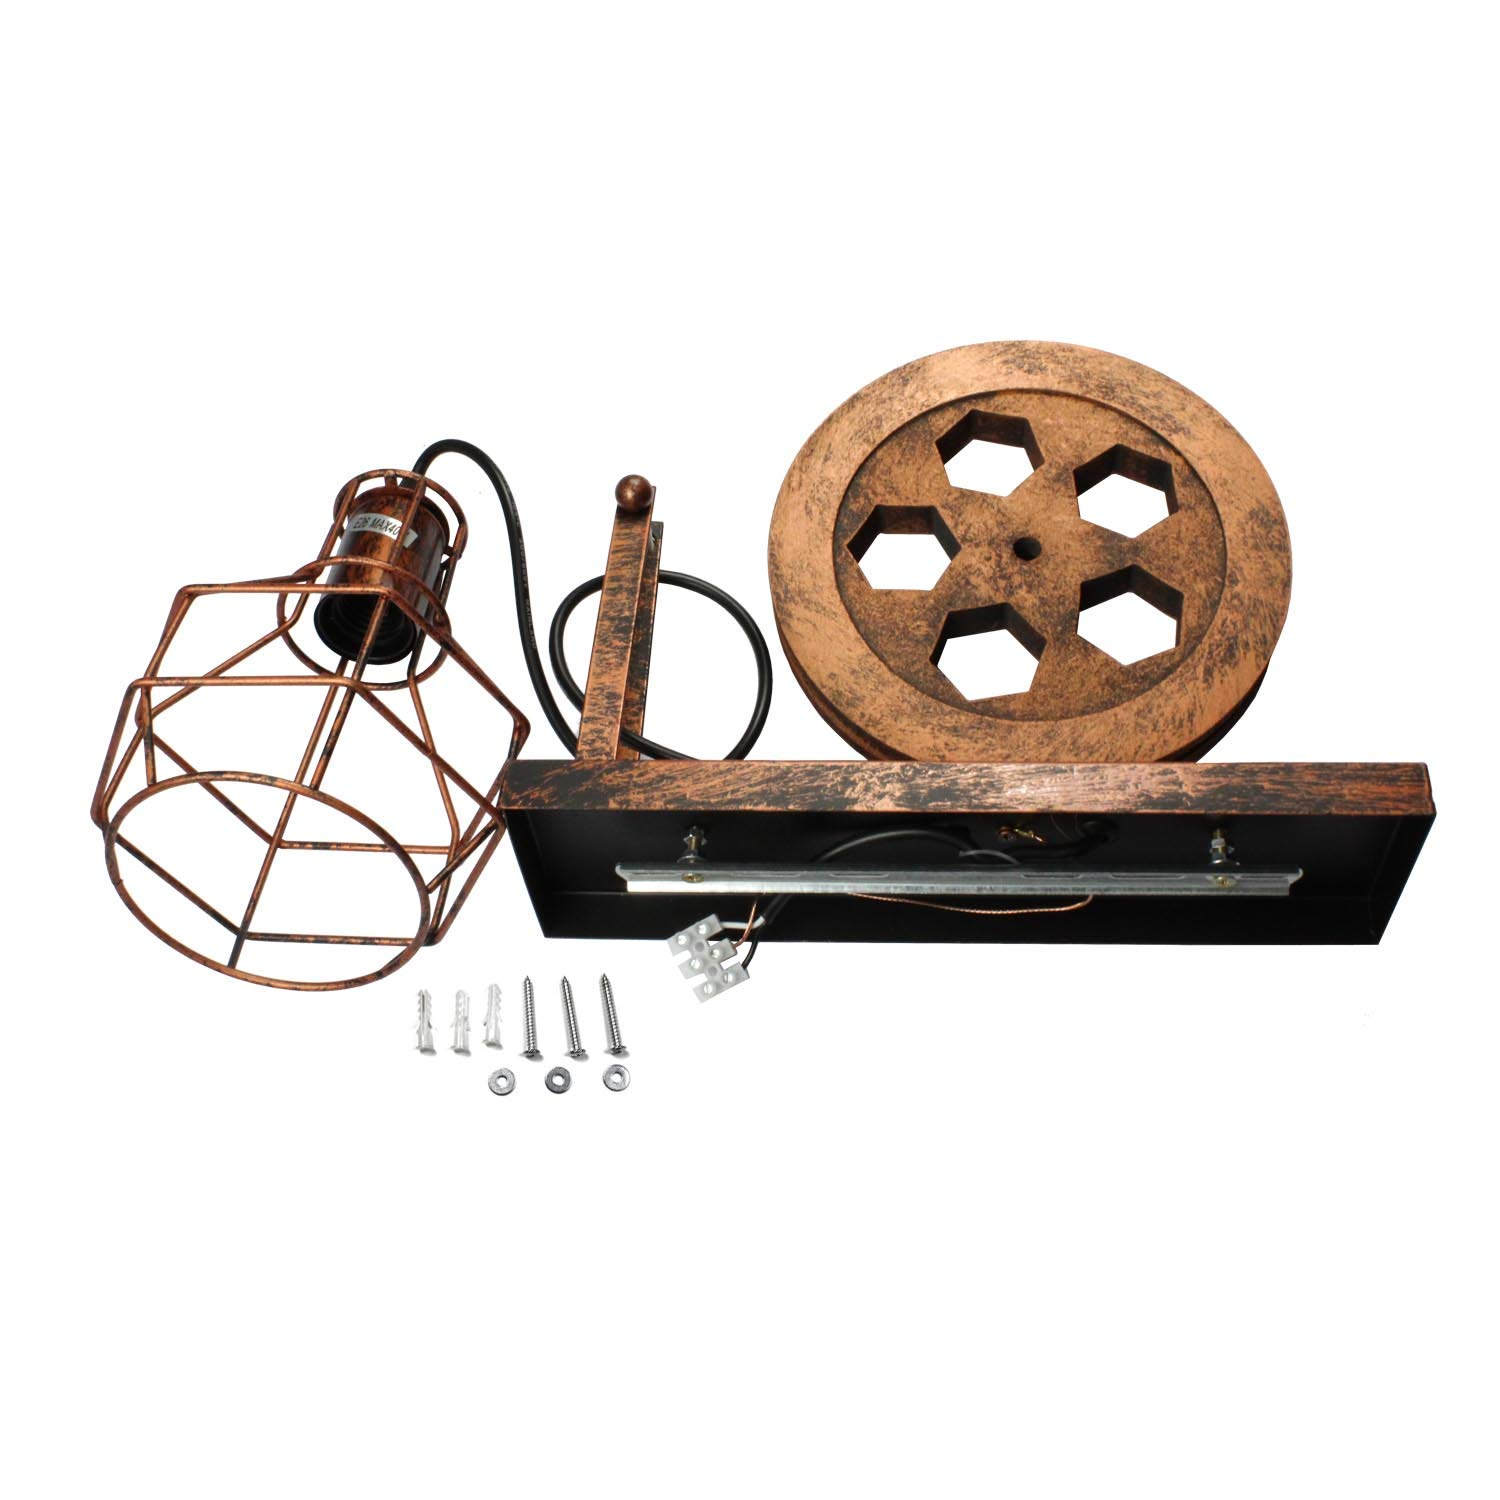 1 Light,Industrial Retro Iron Wall Lamp Creative Personality Lift Pulley Wall Lights Fixture for Indoor Lighting Barn Restaurant in Rust Finished by ZPKelin ZP-W002